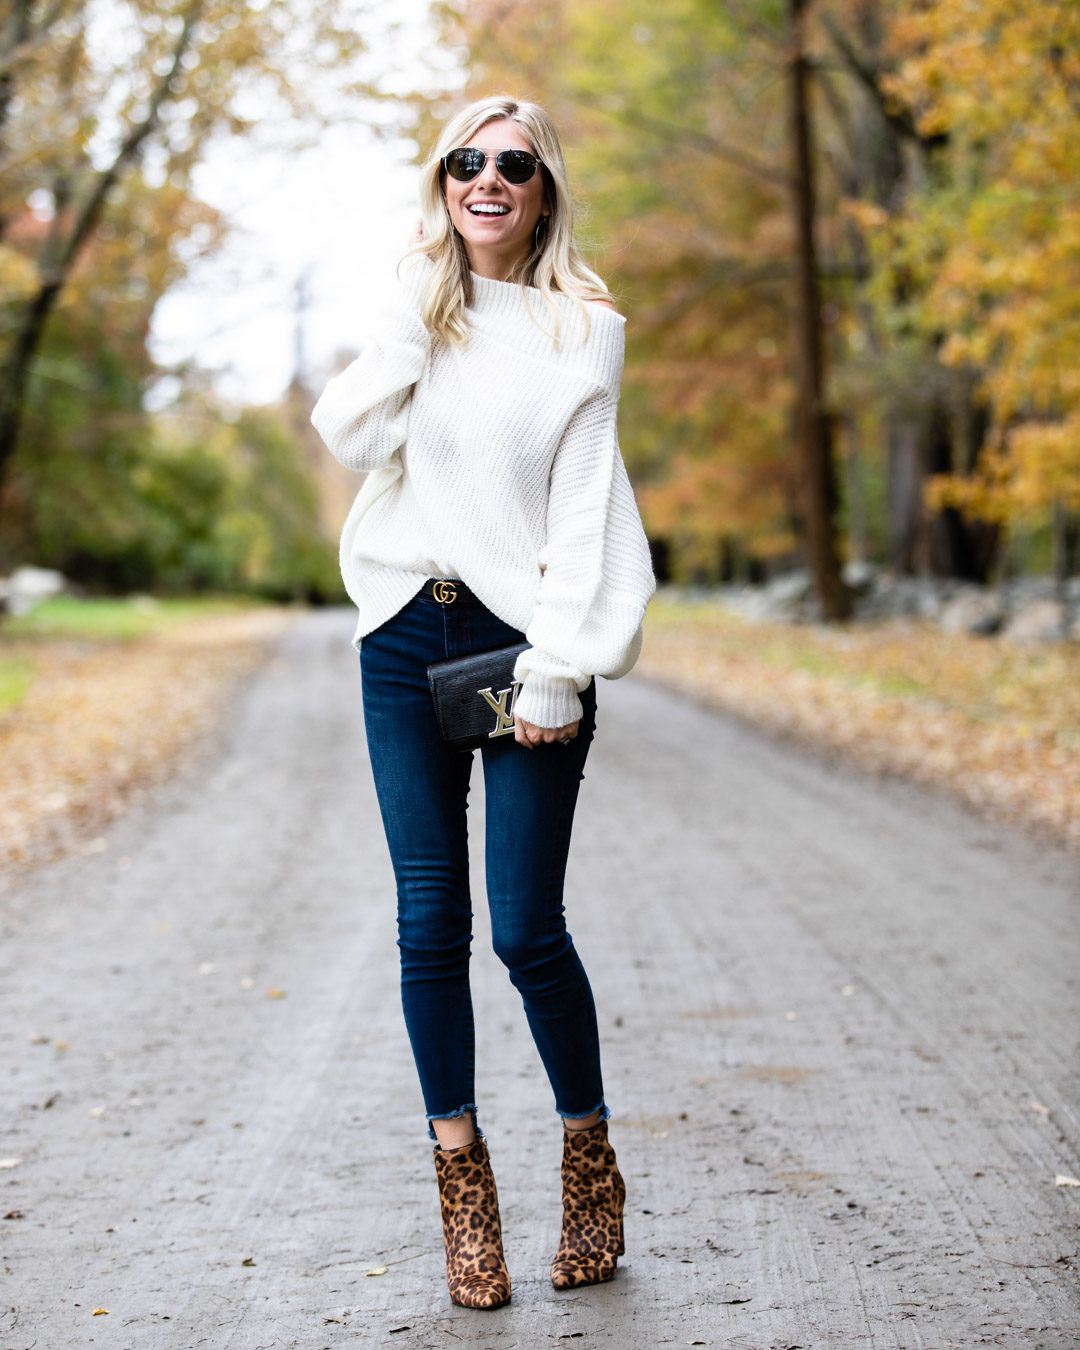 Casual Off the Shoulder Sweater & Leopard Booties